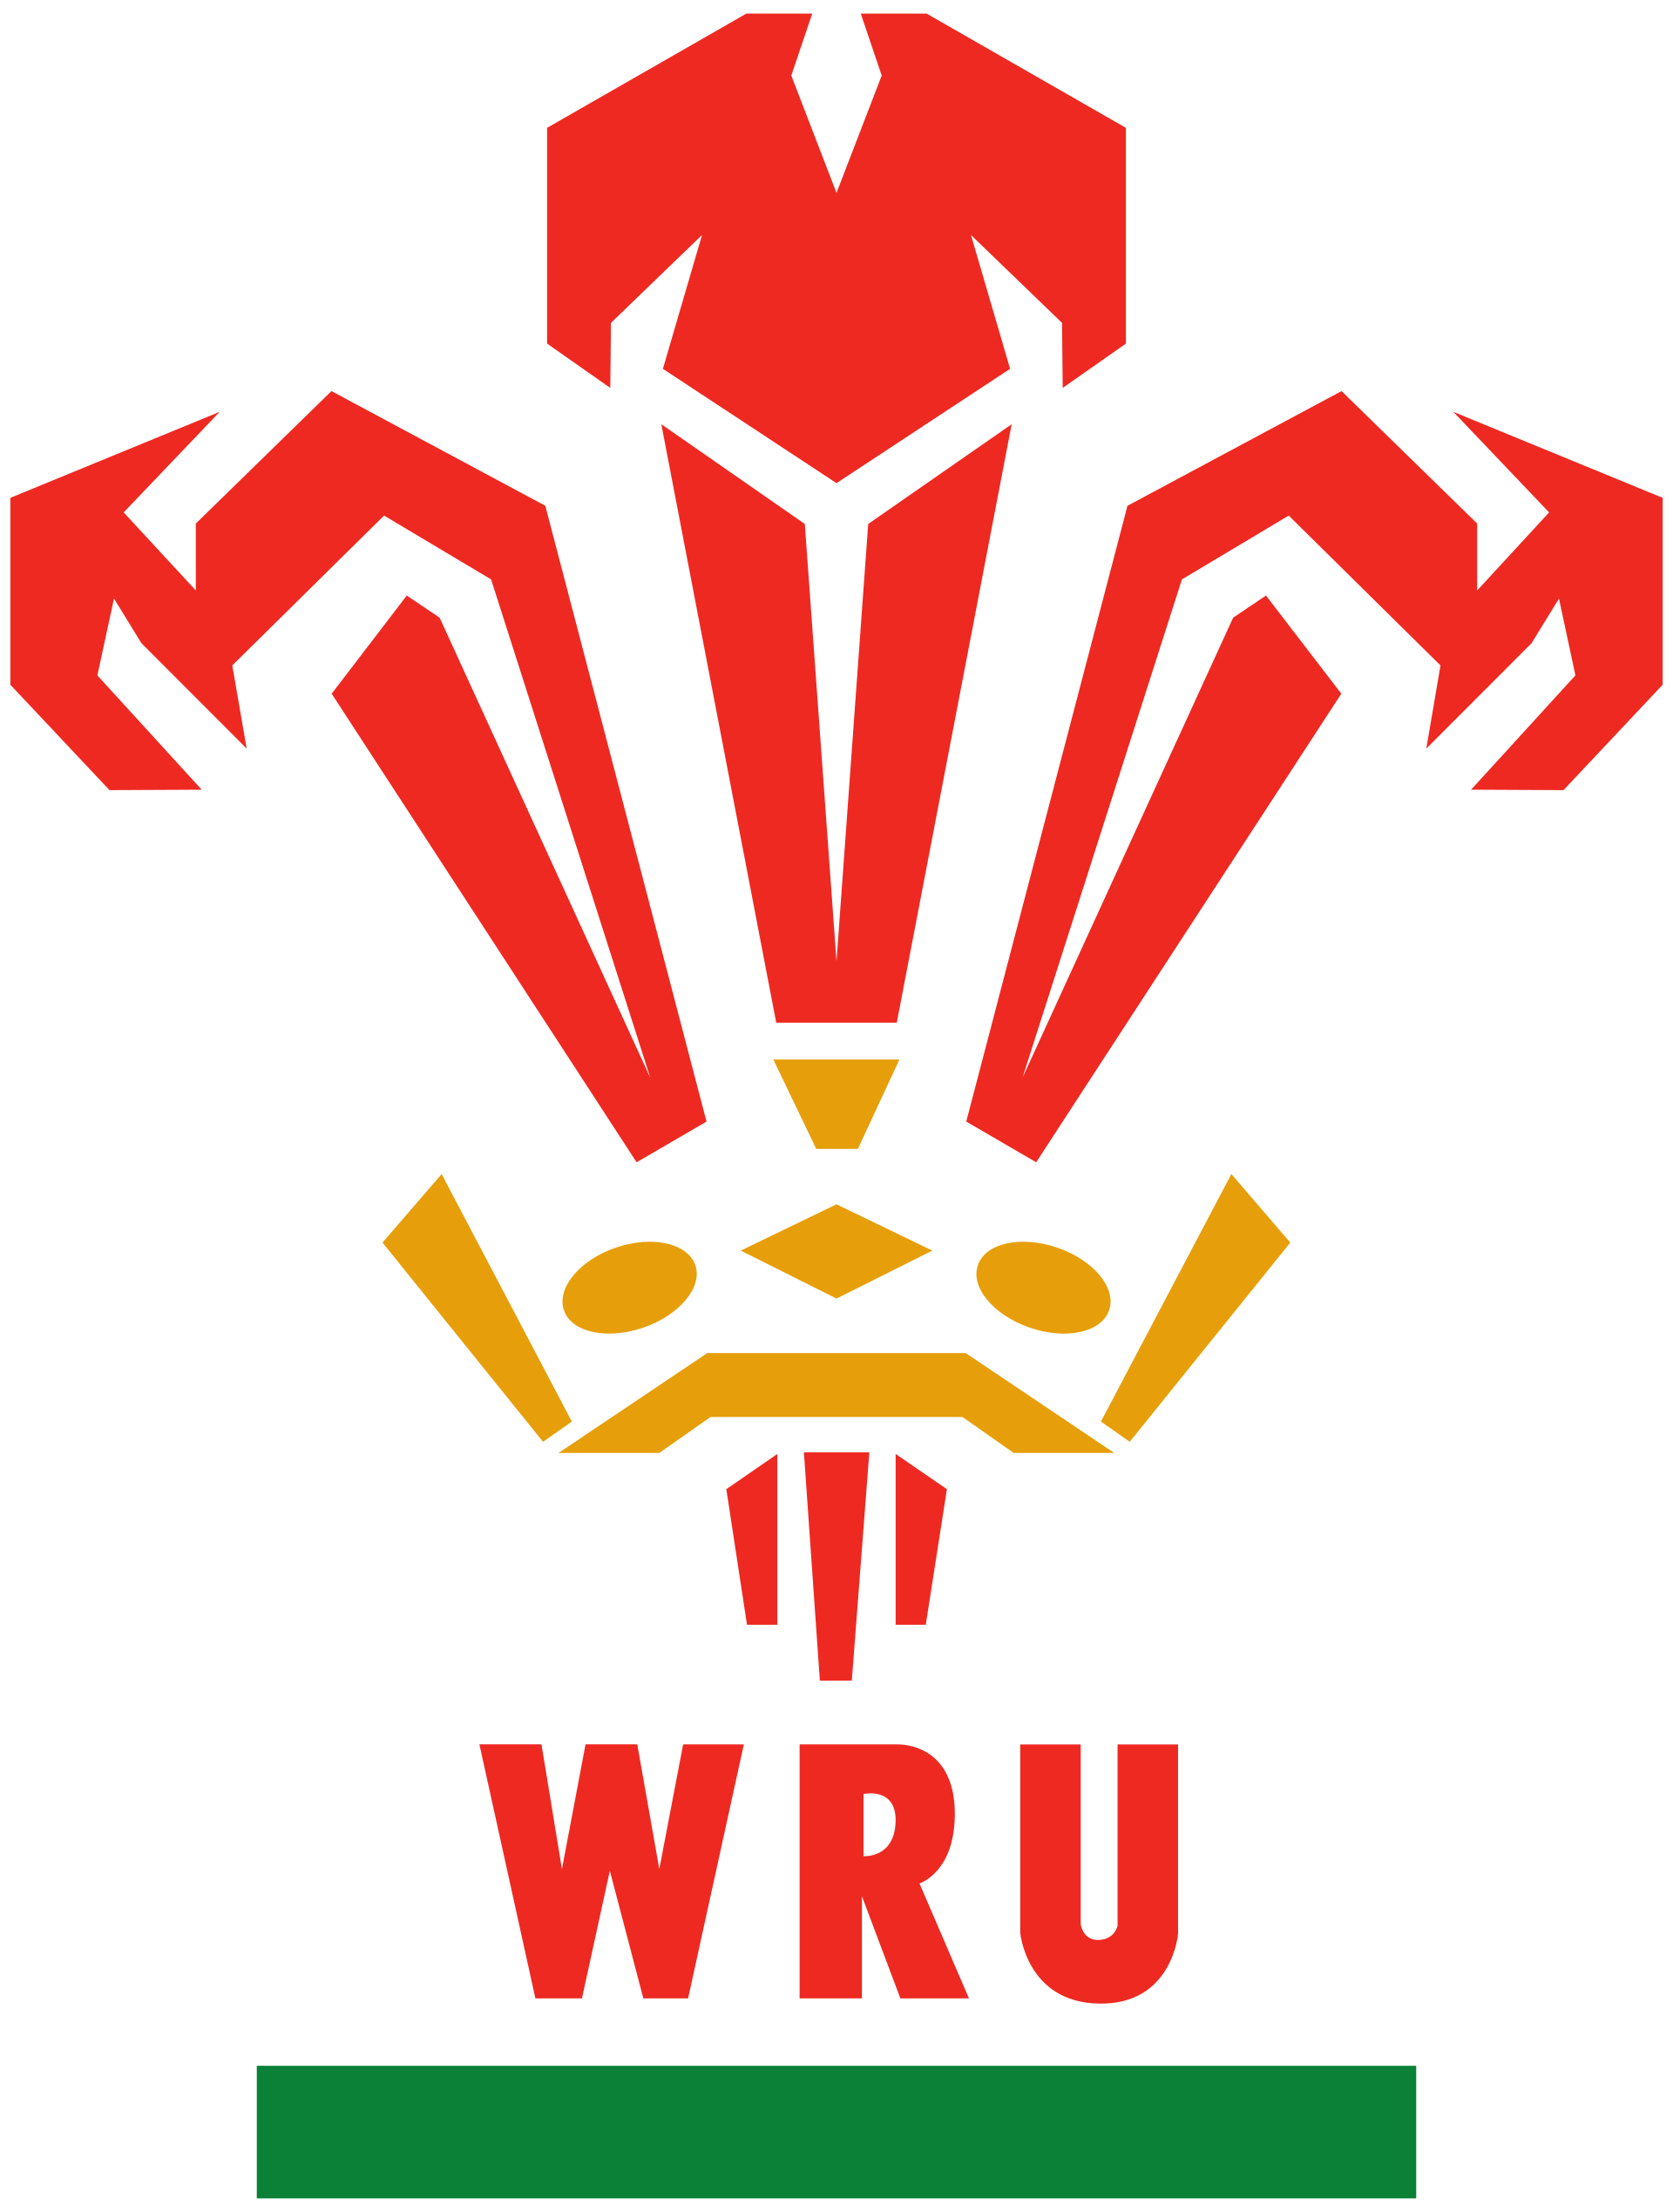 The Wales National Rugby Union Team Represent Wales In International Rugby Union They Compete Annually In The Six Nat Wales Rugby Rugby Logo Rugby Union Teams